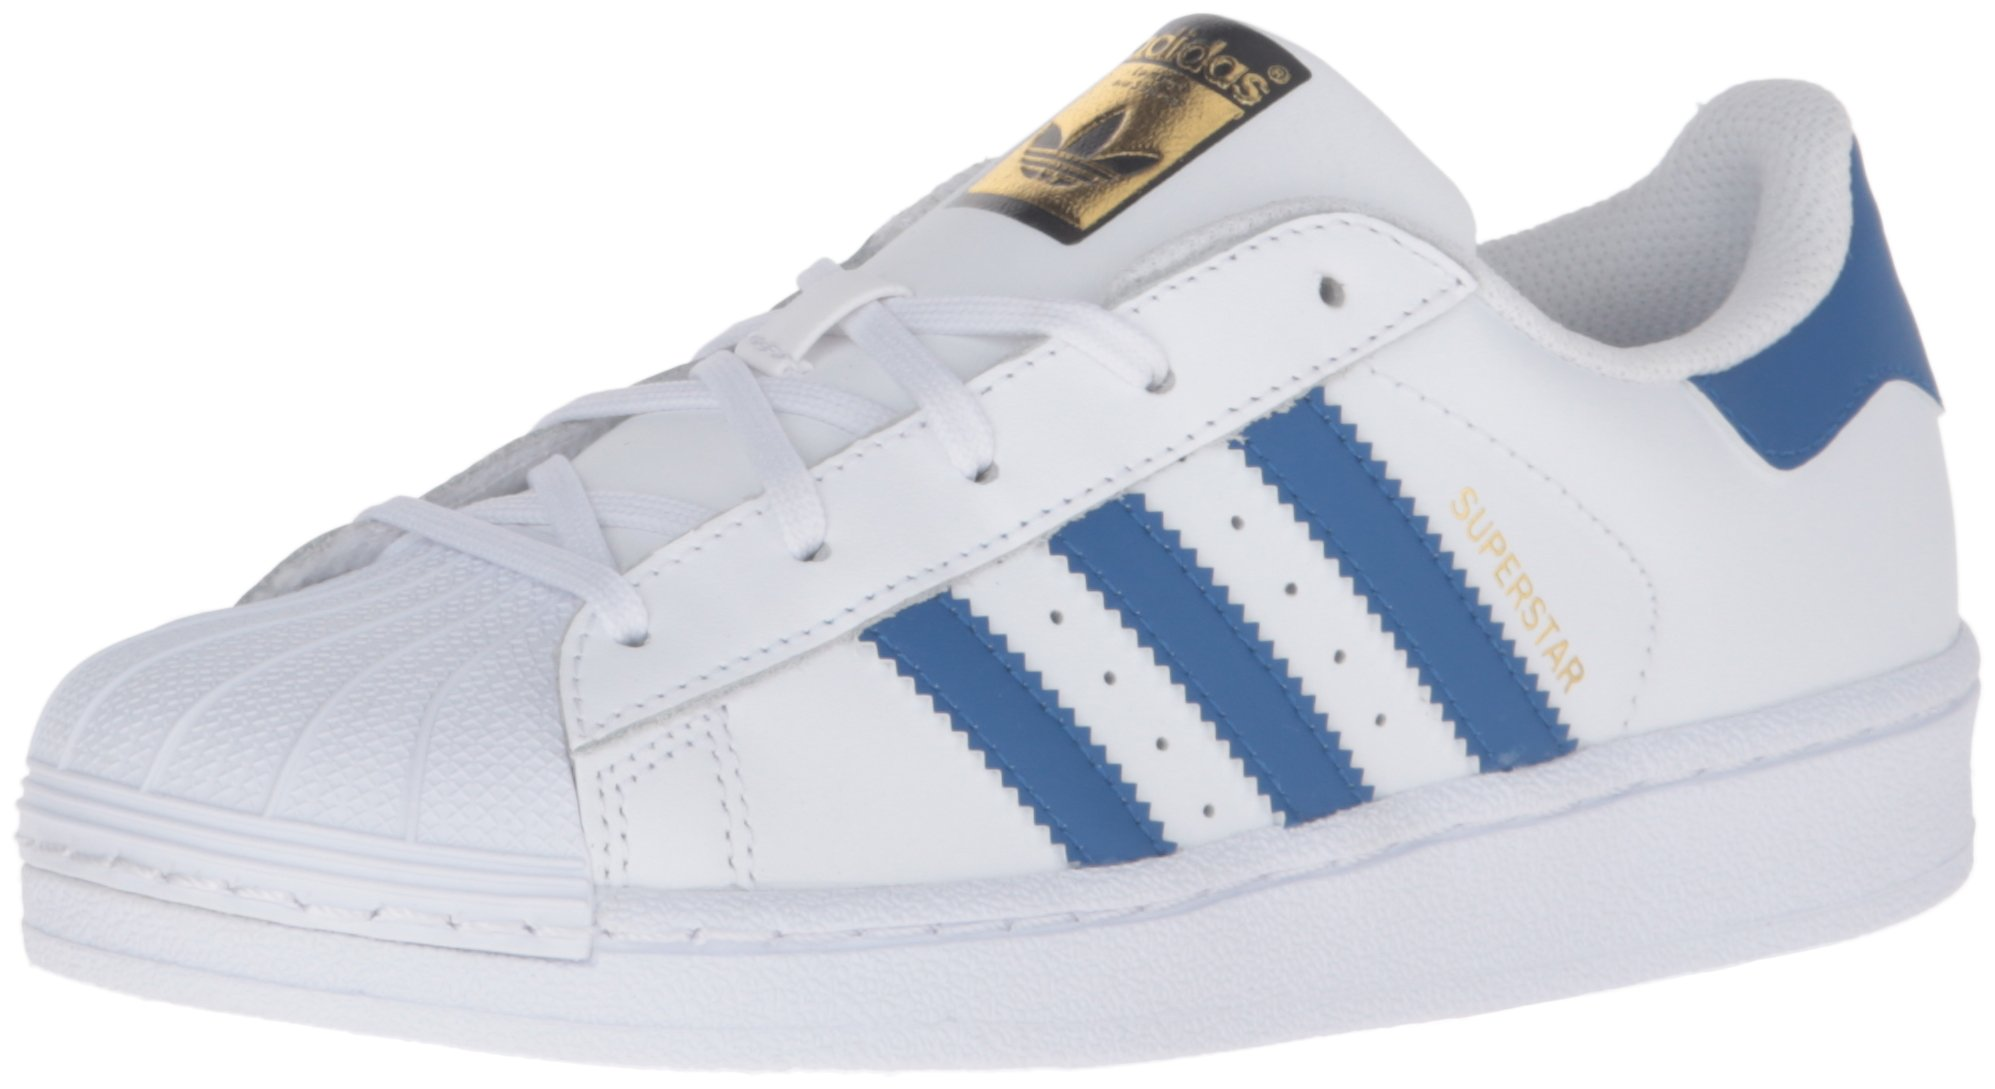 adidas Boys' Superstar Foundation EL C Skate Shoe, White/Satellite/White, 11 M US Little Kid by adidas Originals